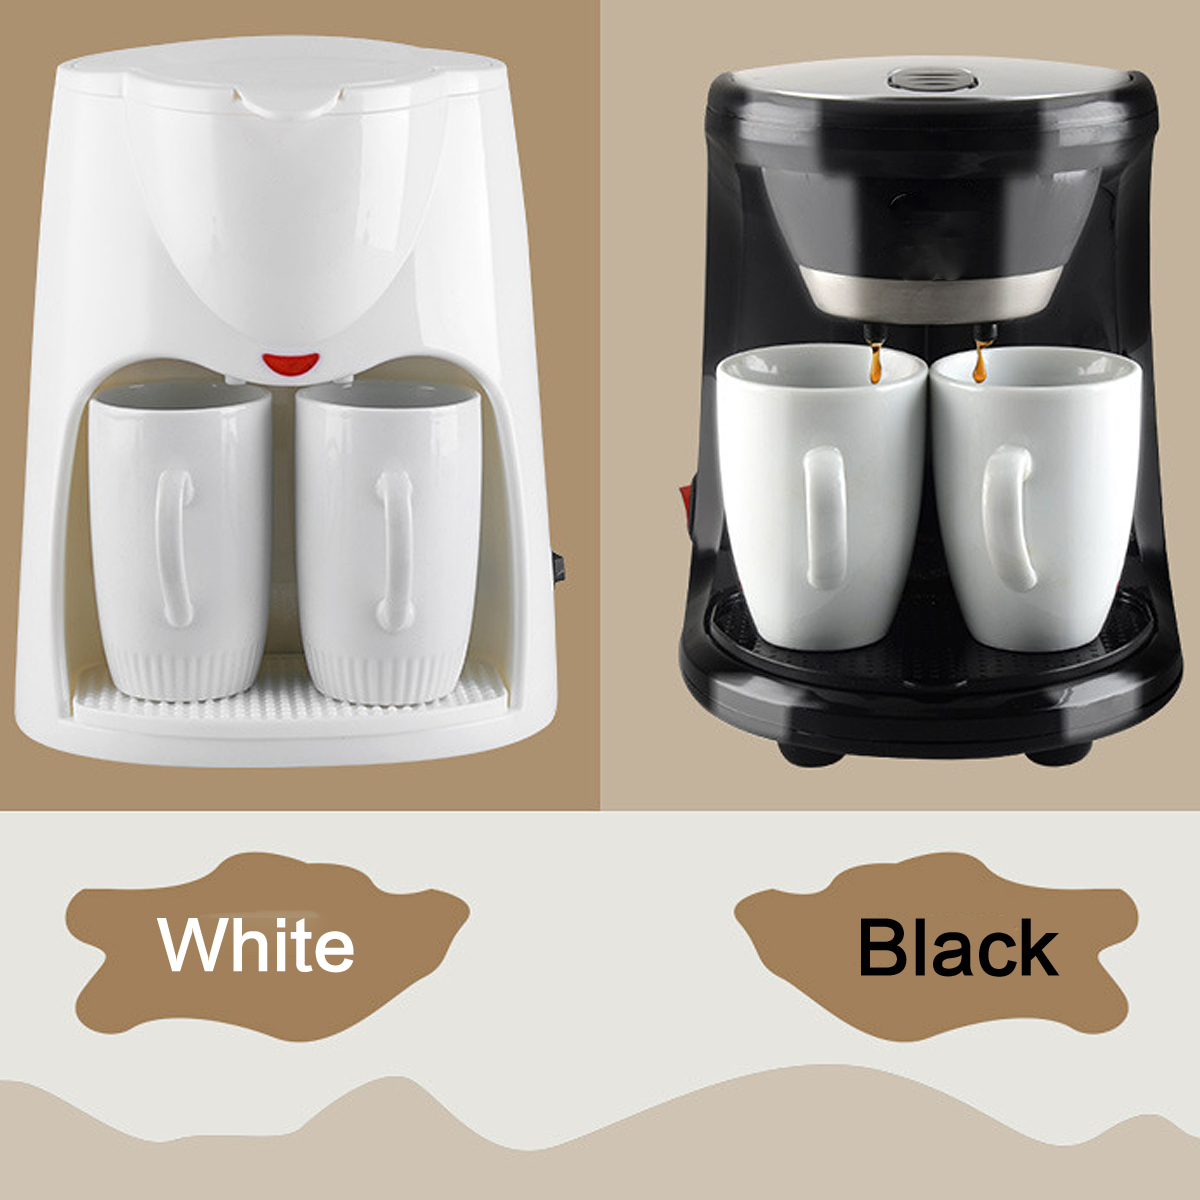 Warmtoo Mini Electric Automatic Dual Use Coffee Machine 2 Cups Drip Coffee Tea Maker for Home Office Cafe Black 220V White 230V 500w 2 cups drip coffee machine electric espresso coffee maker for home cafe bar coffee pot automatic coffee maker